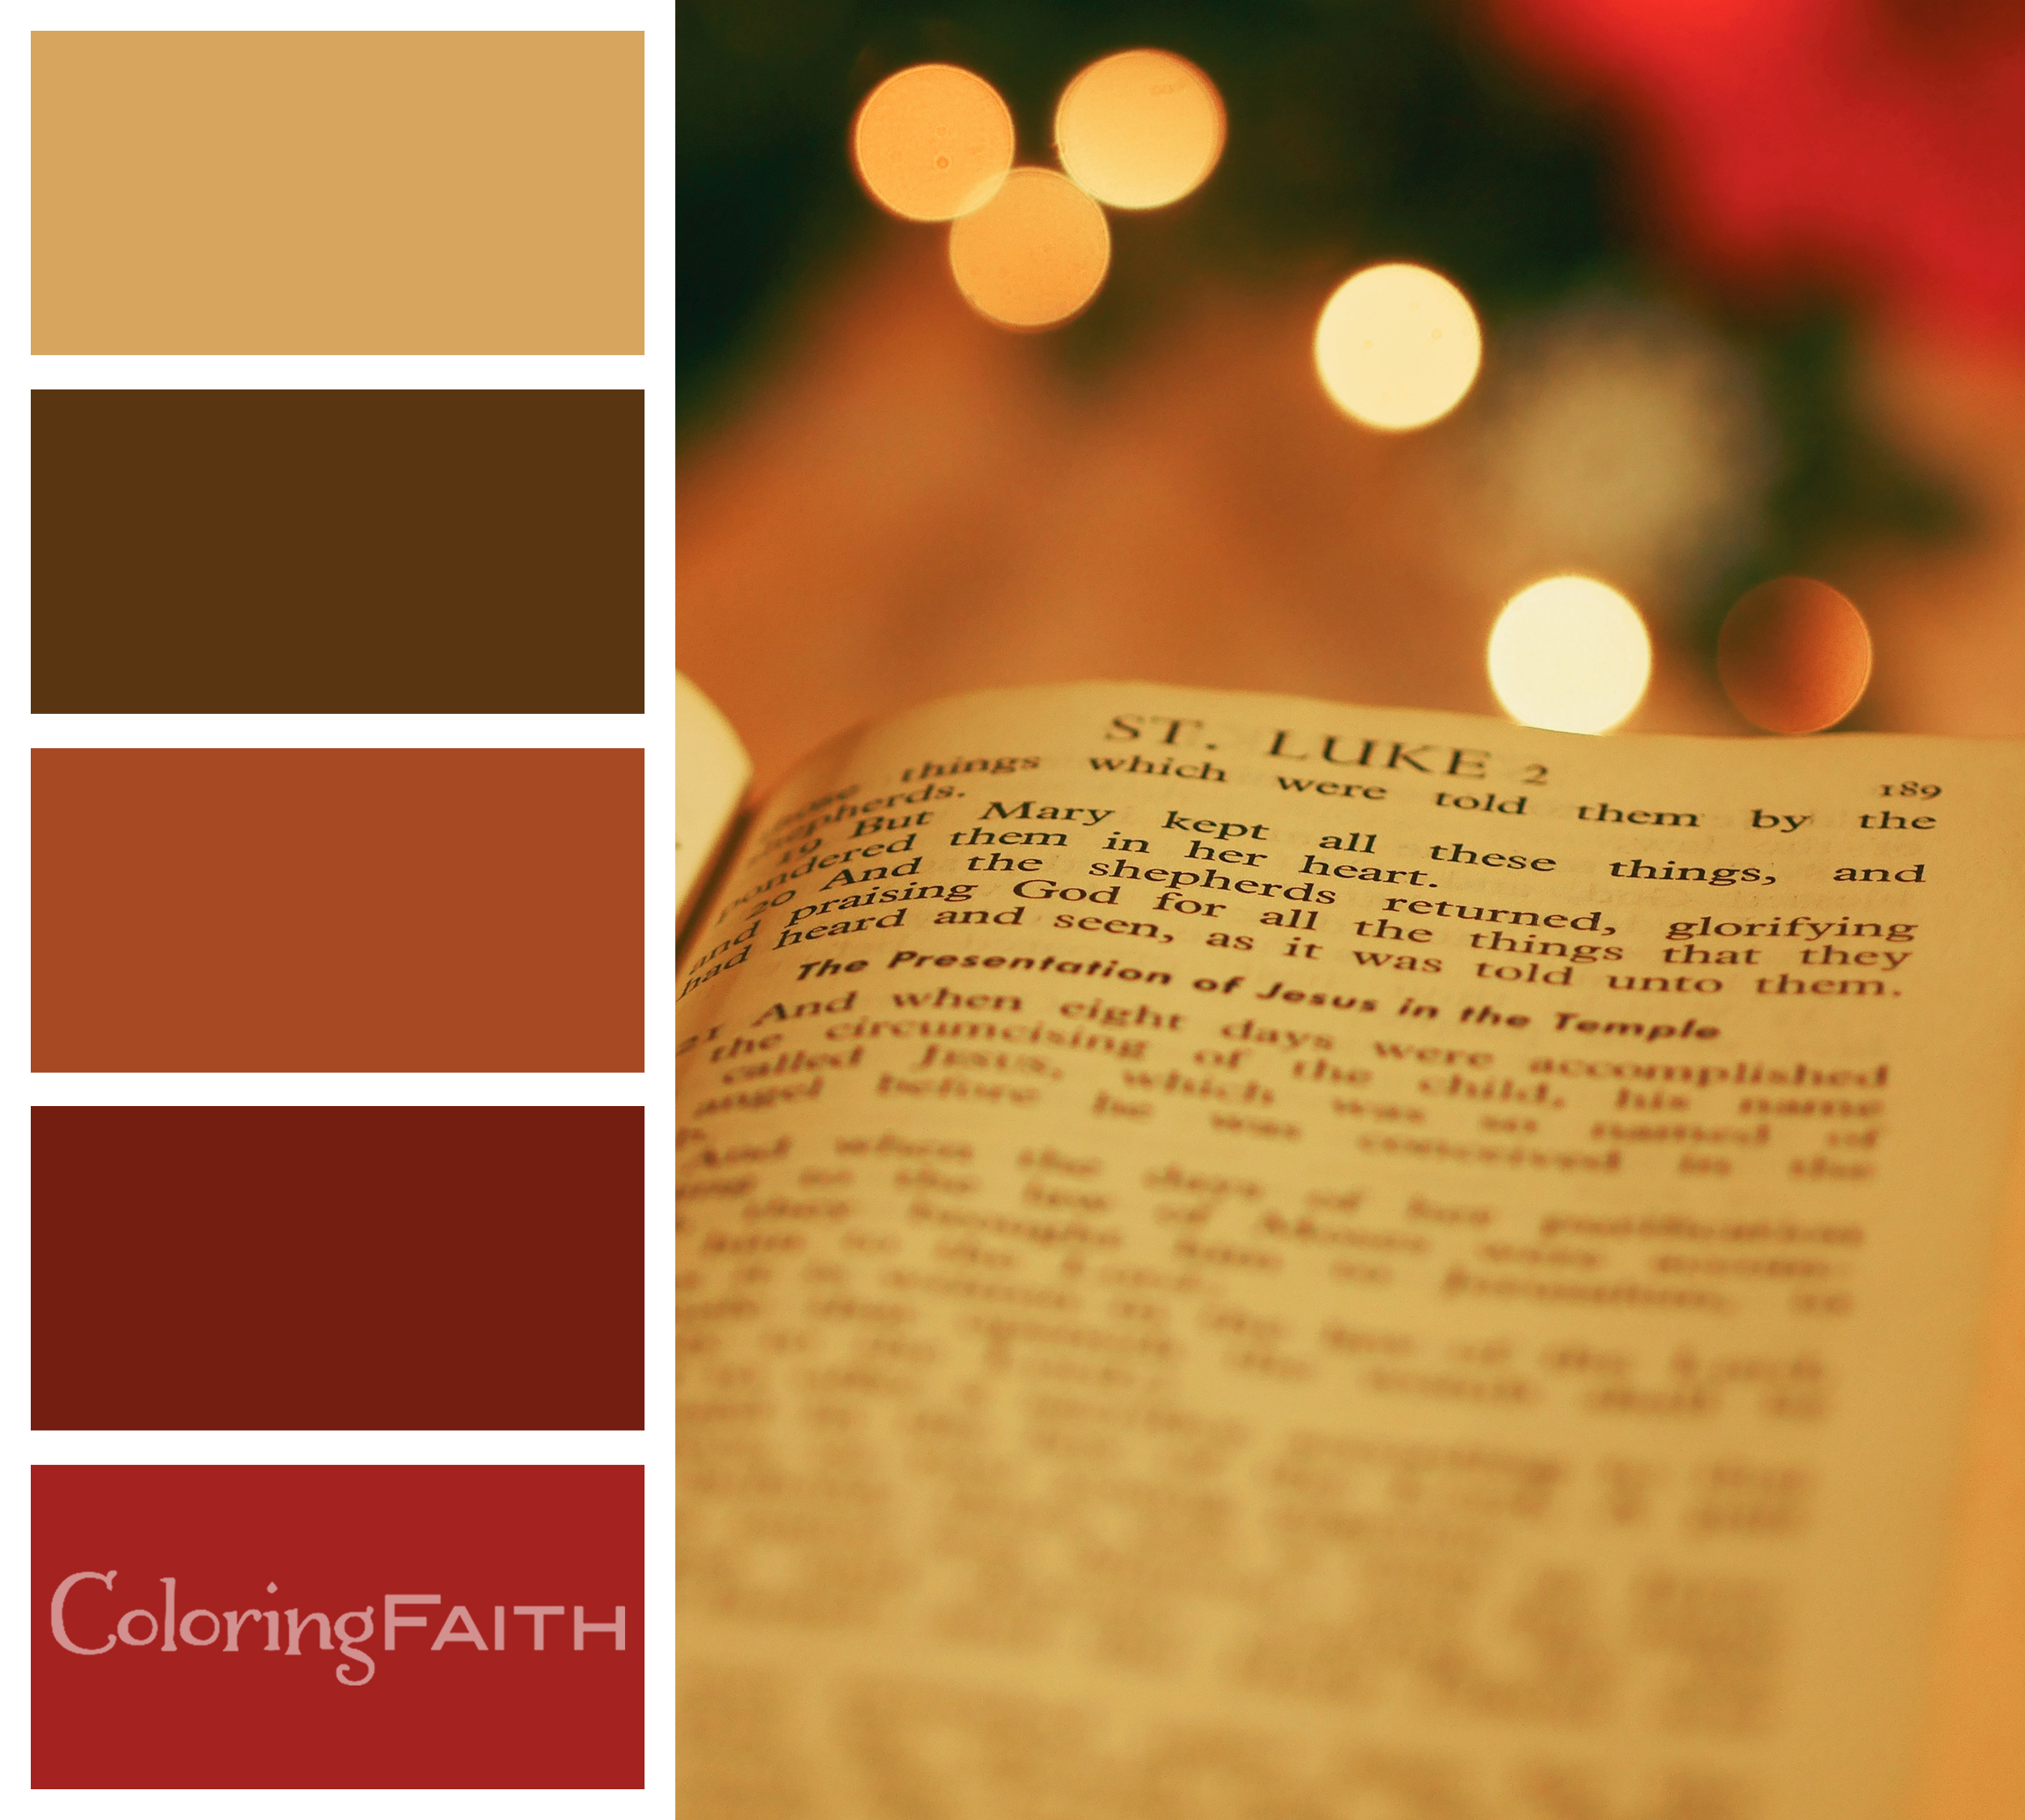 An adult coloring book Christmas color palette featuring a bible with Luke 2.